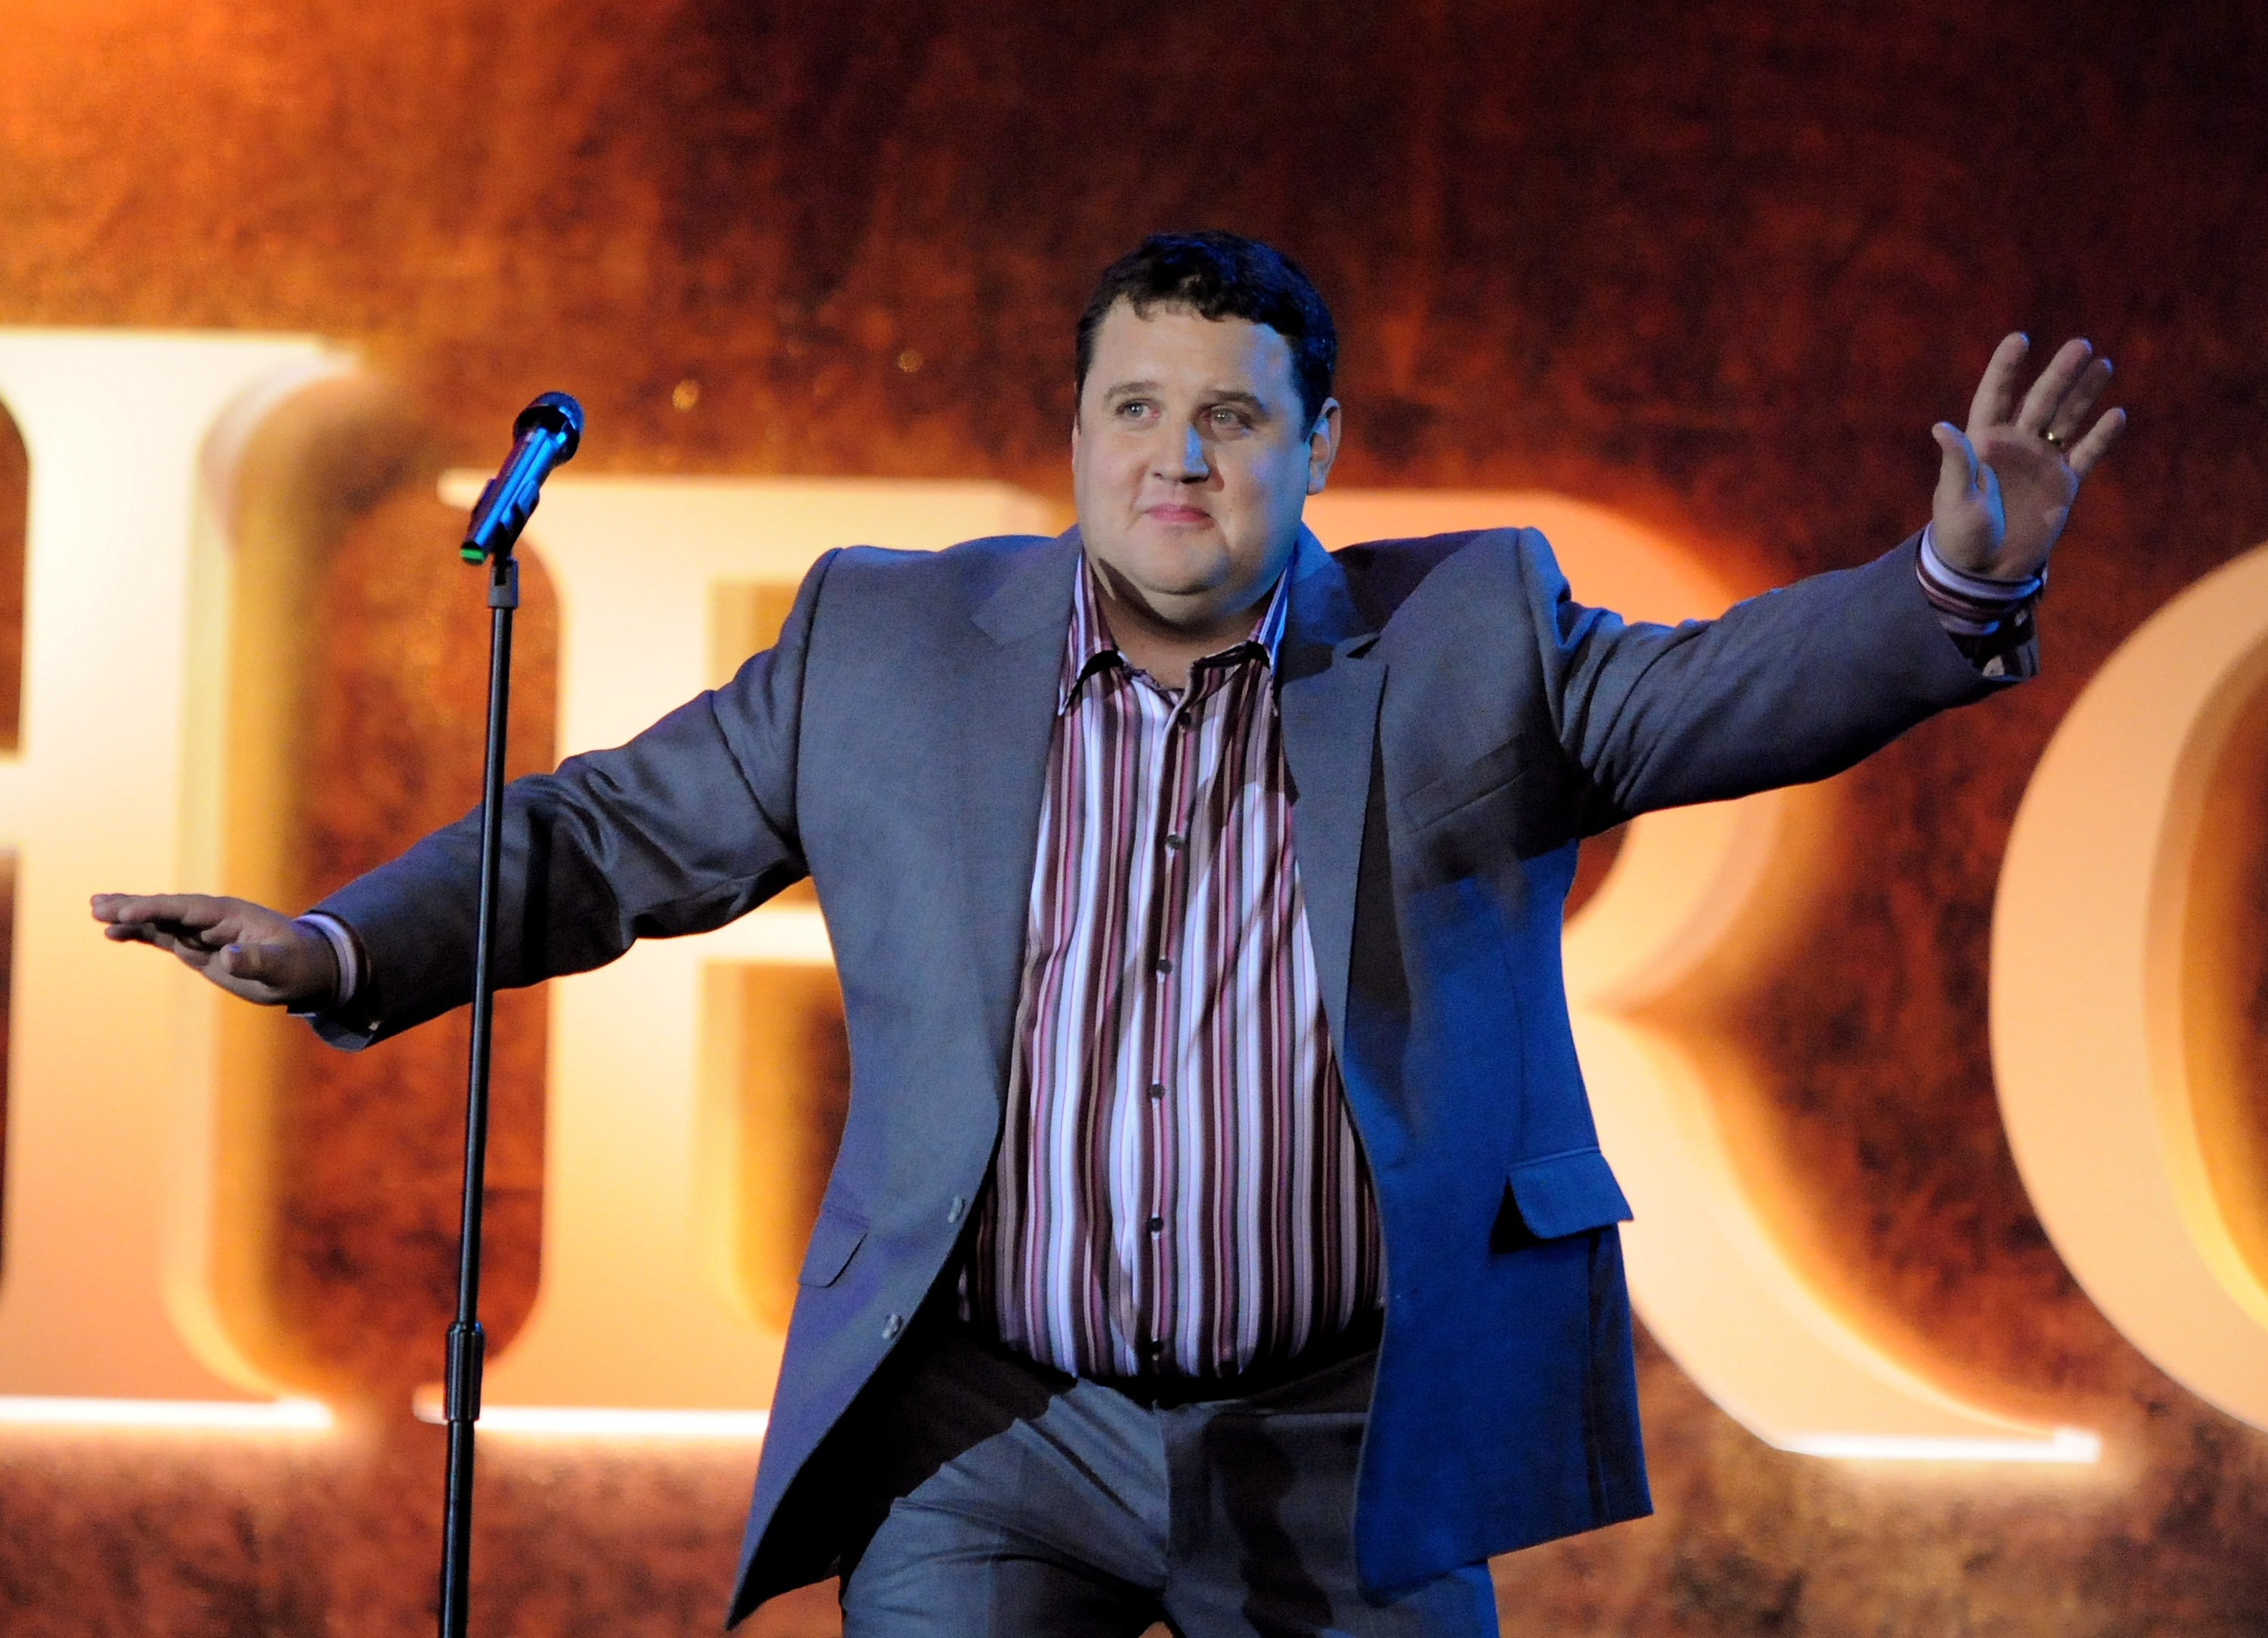 Peter Kay is 'getting better' and will make comeback at NTAs, claims Chris Evans